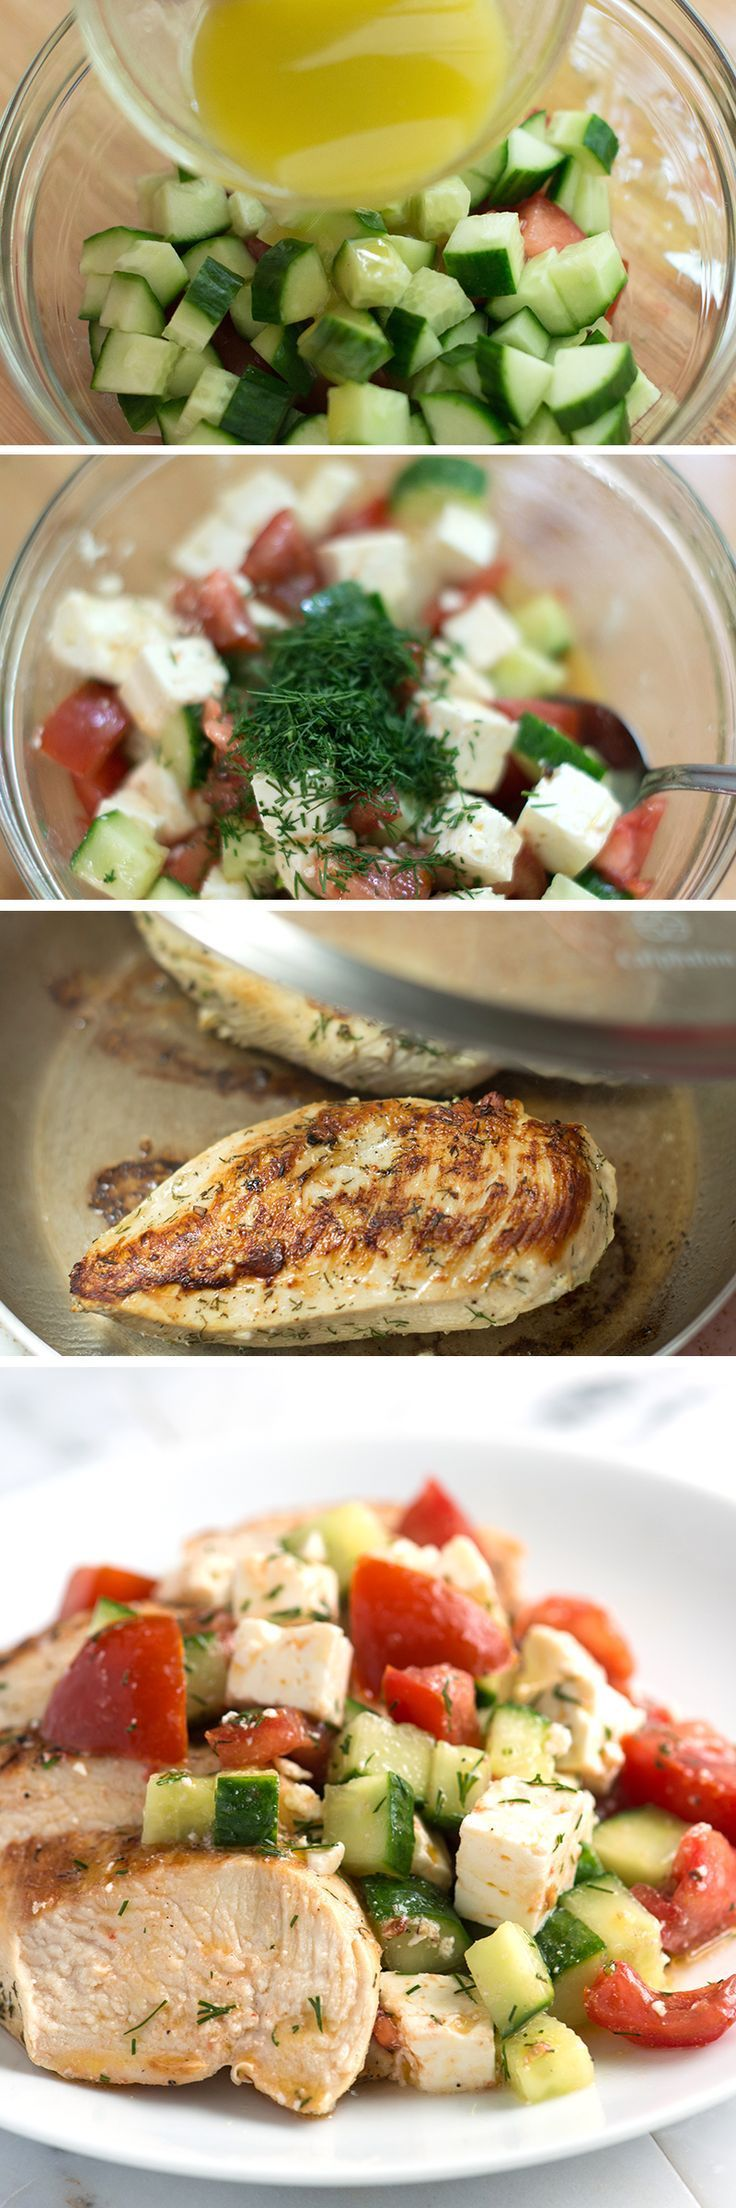 Lemony Chicken Breast Recipe with Cucumber Feta Salad - Chicken breasts are a staple in most kitchens, including ours. This simple marinated chicken breast is topped with a fresh, crisp cucumber salad  and is absolutely perfect for the weekday. From inspiredtaste.net